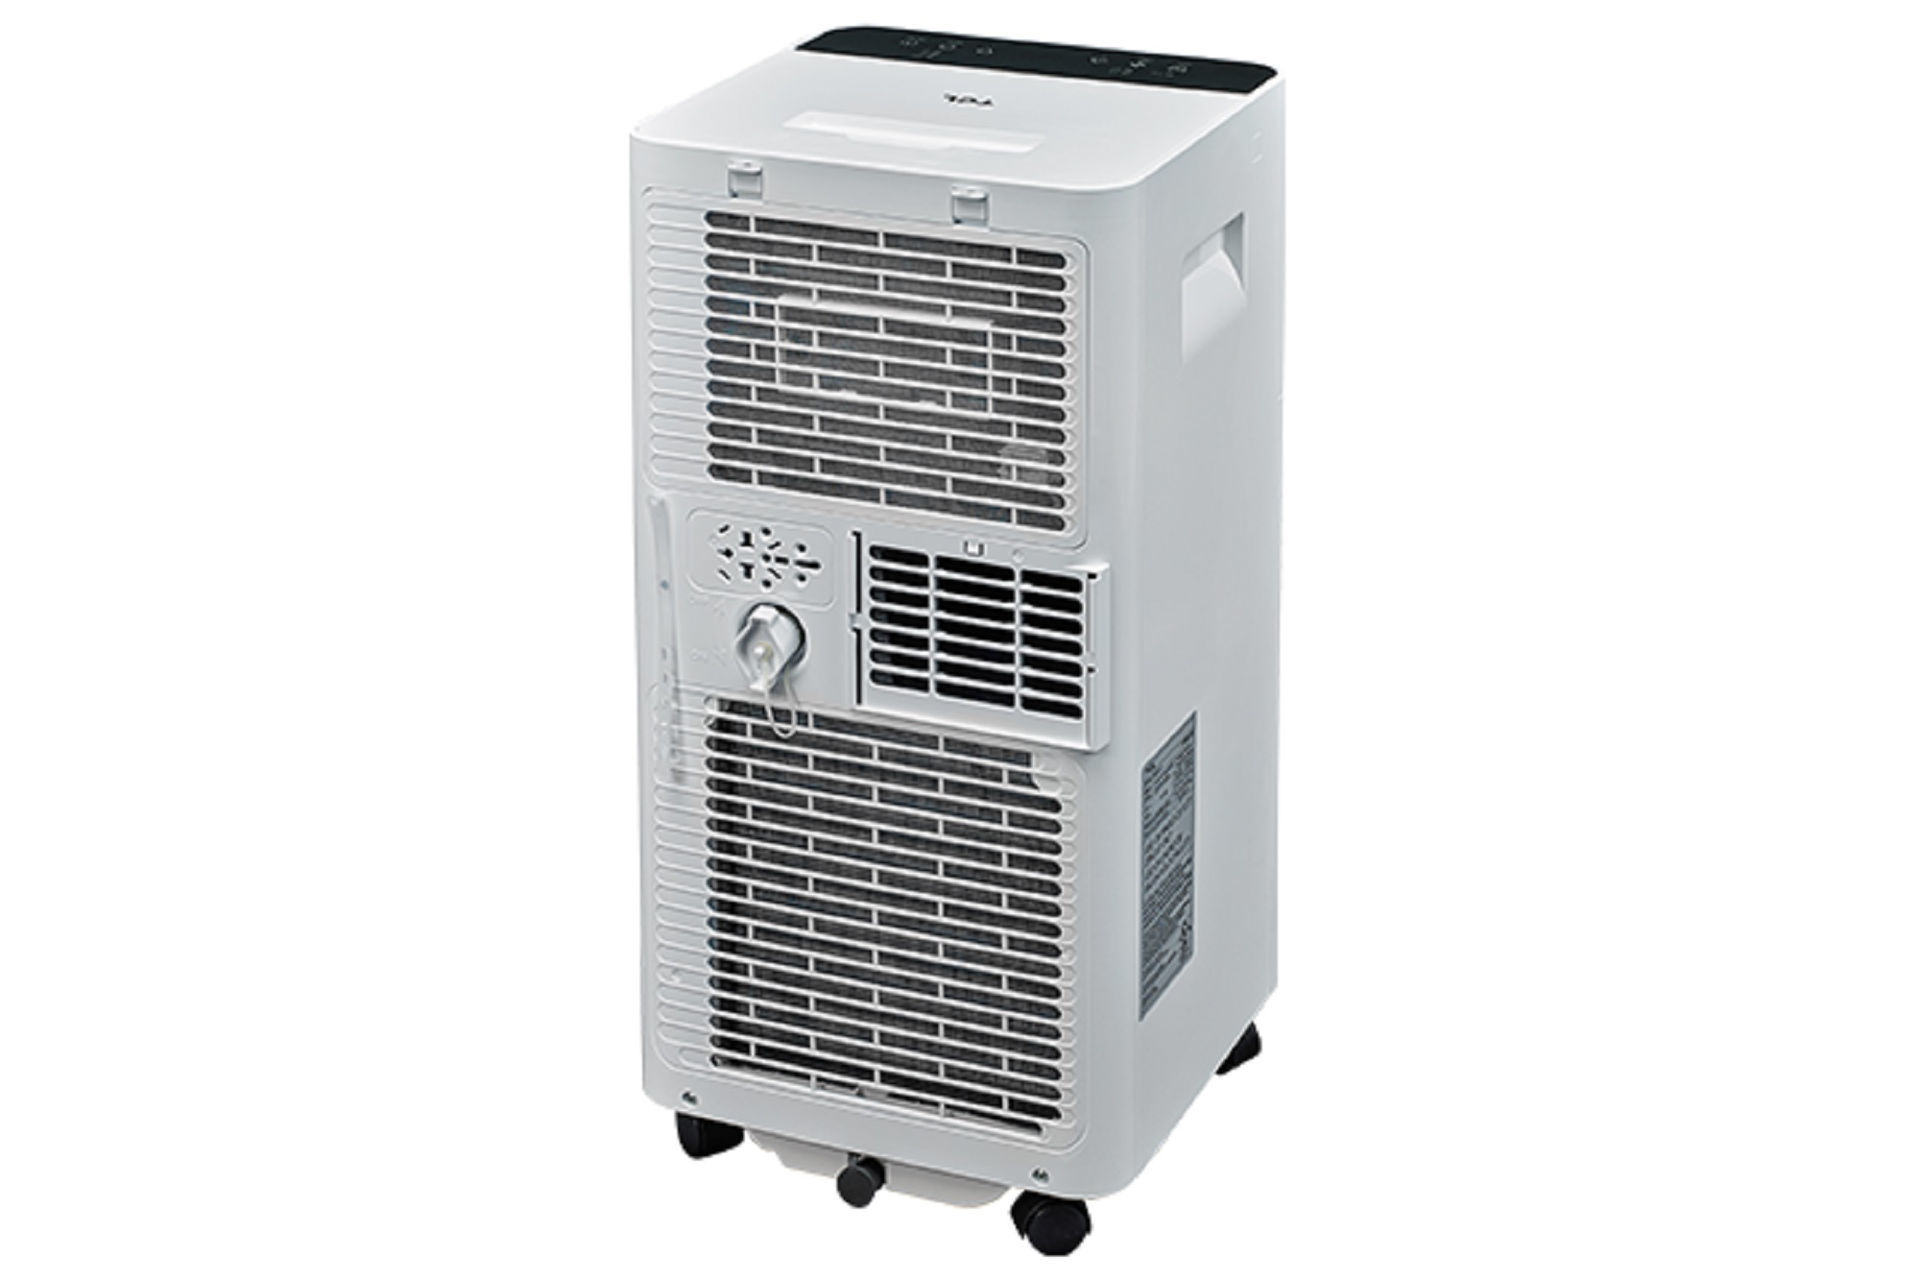 TCL 8P33 8,000 btu Portable Air Conditioner. Conducted Sales